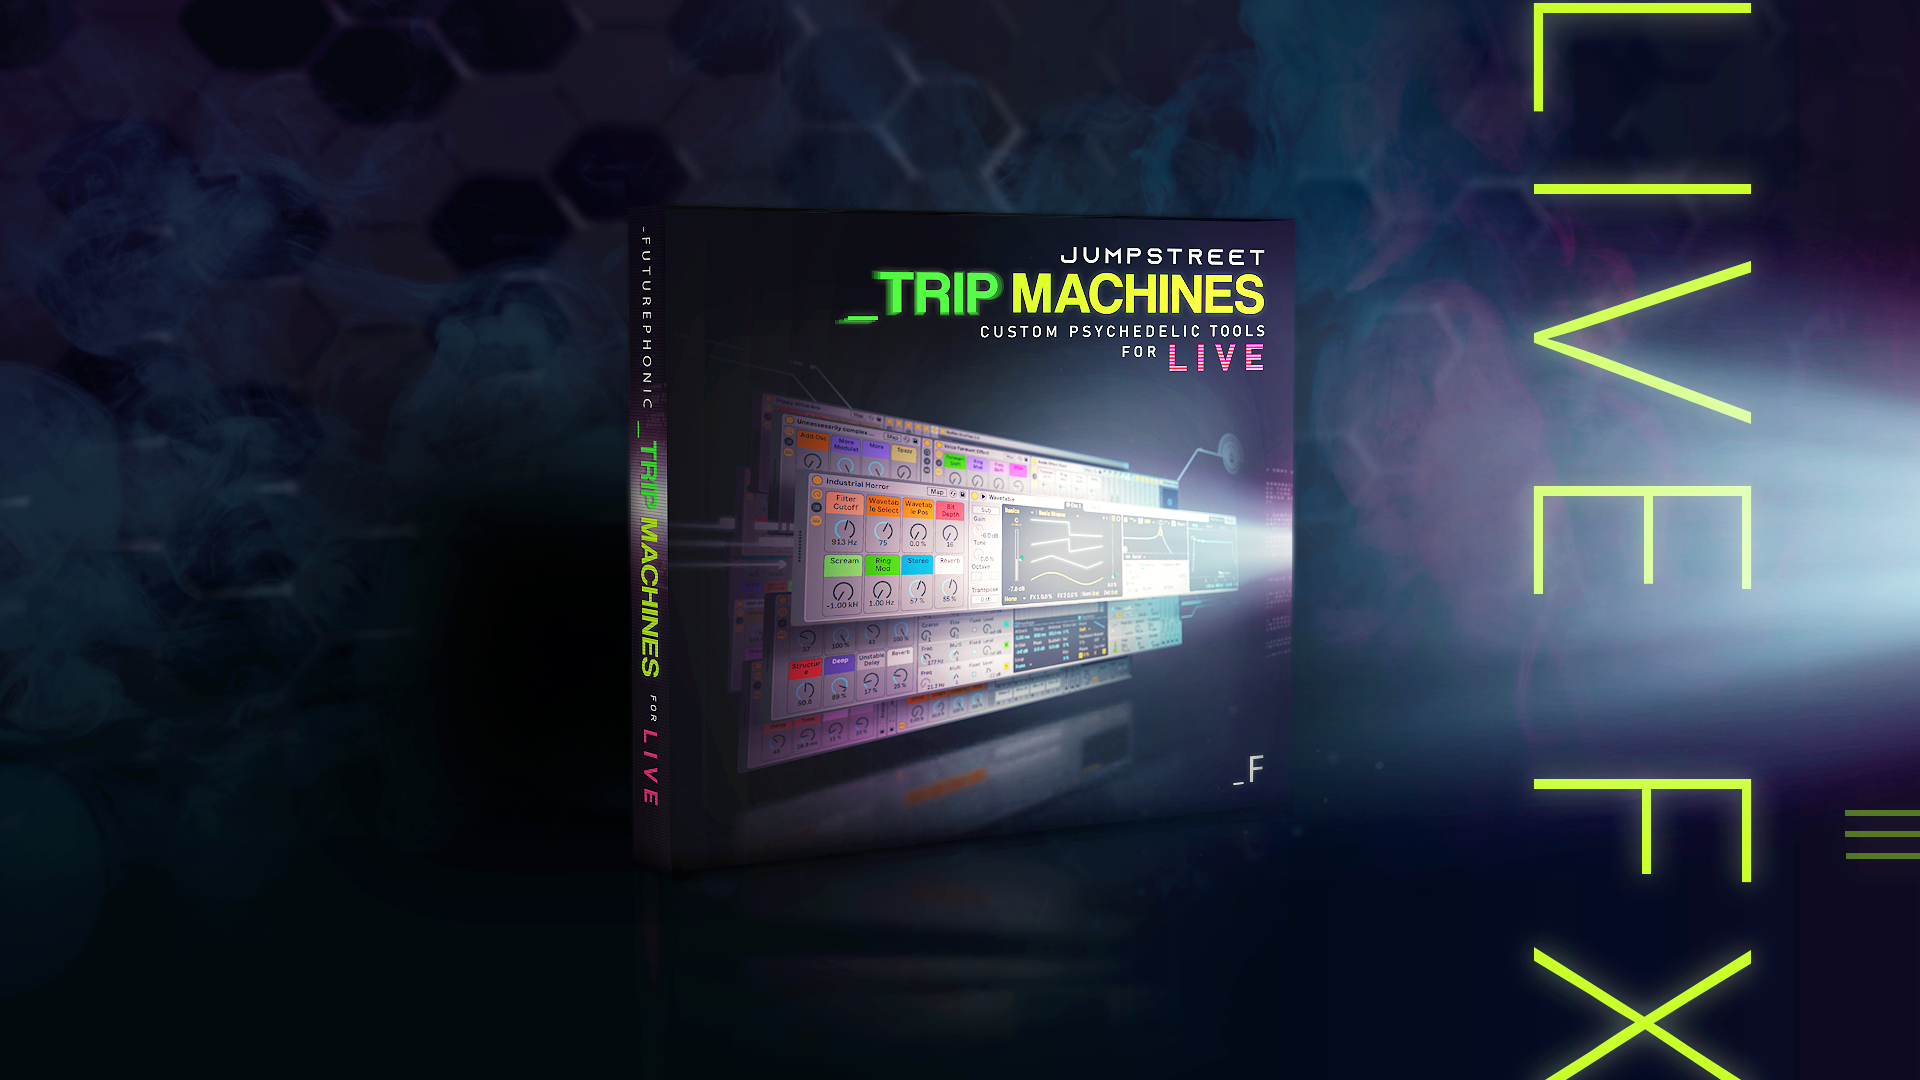 _Trip Machines for Live